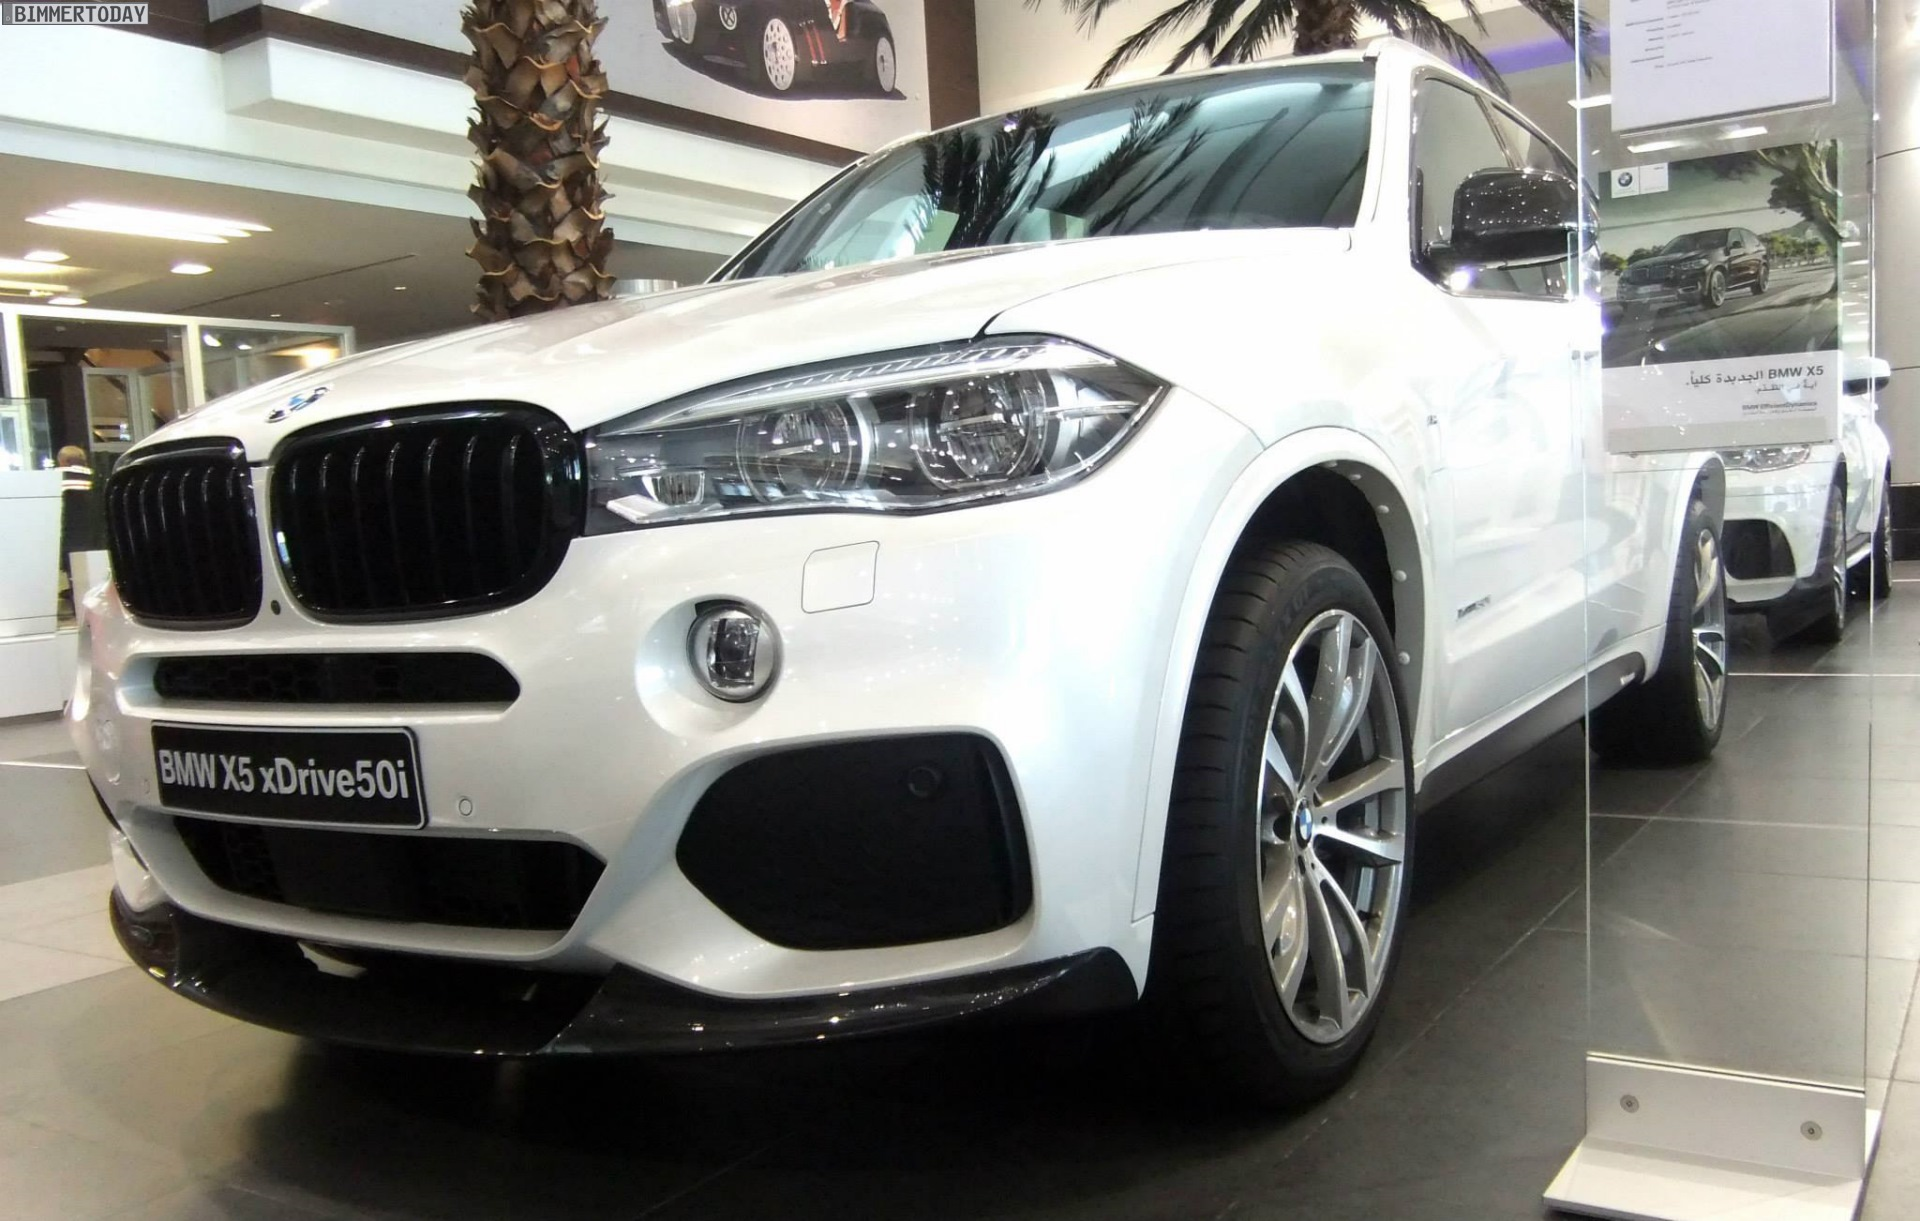 bmw m performance bmw x5 f15 mit tuning zubeh r und v8. Black Bedroom Furniture Sets. Home Design Ideas